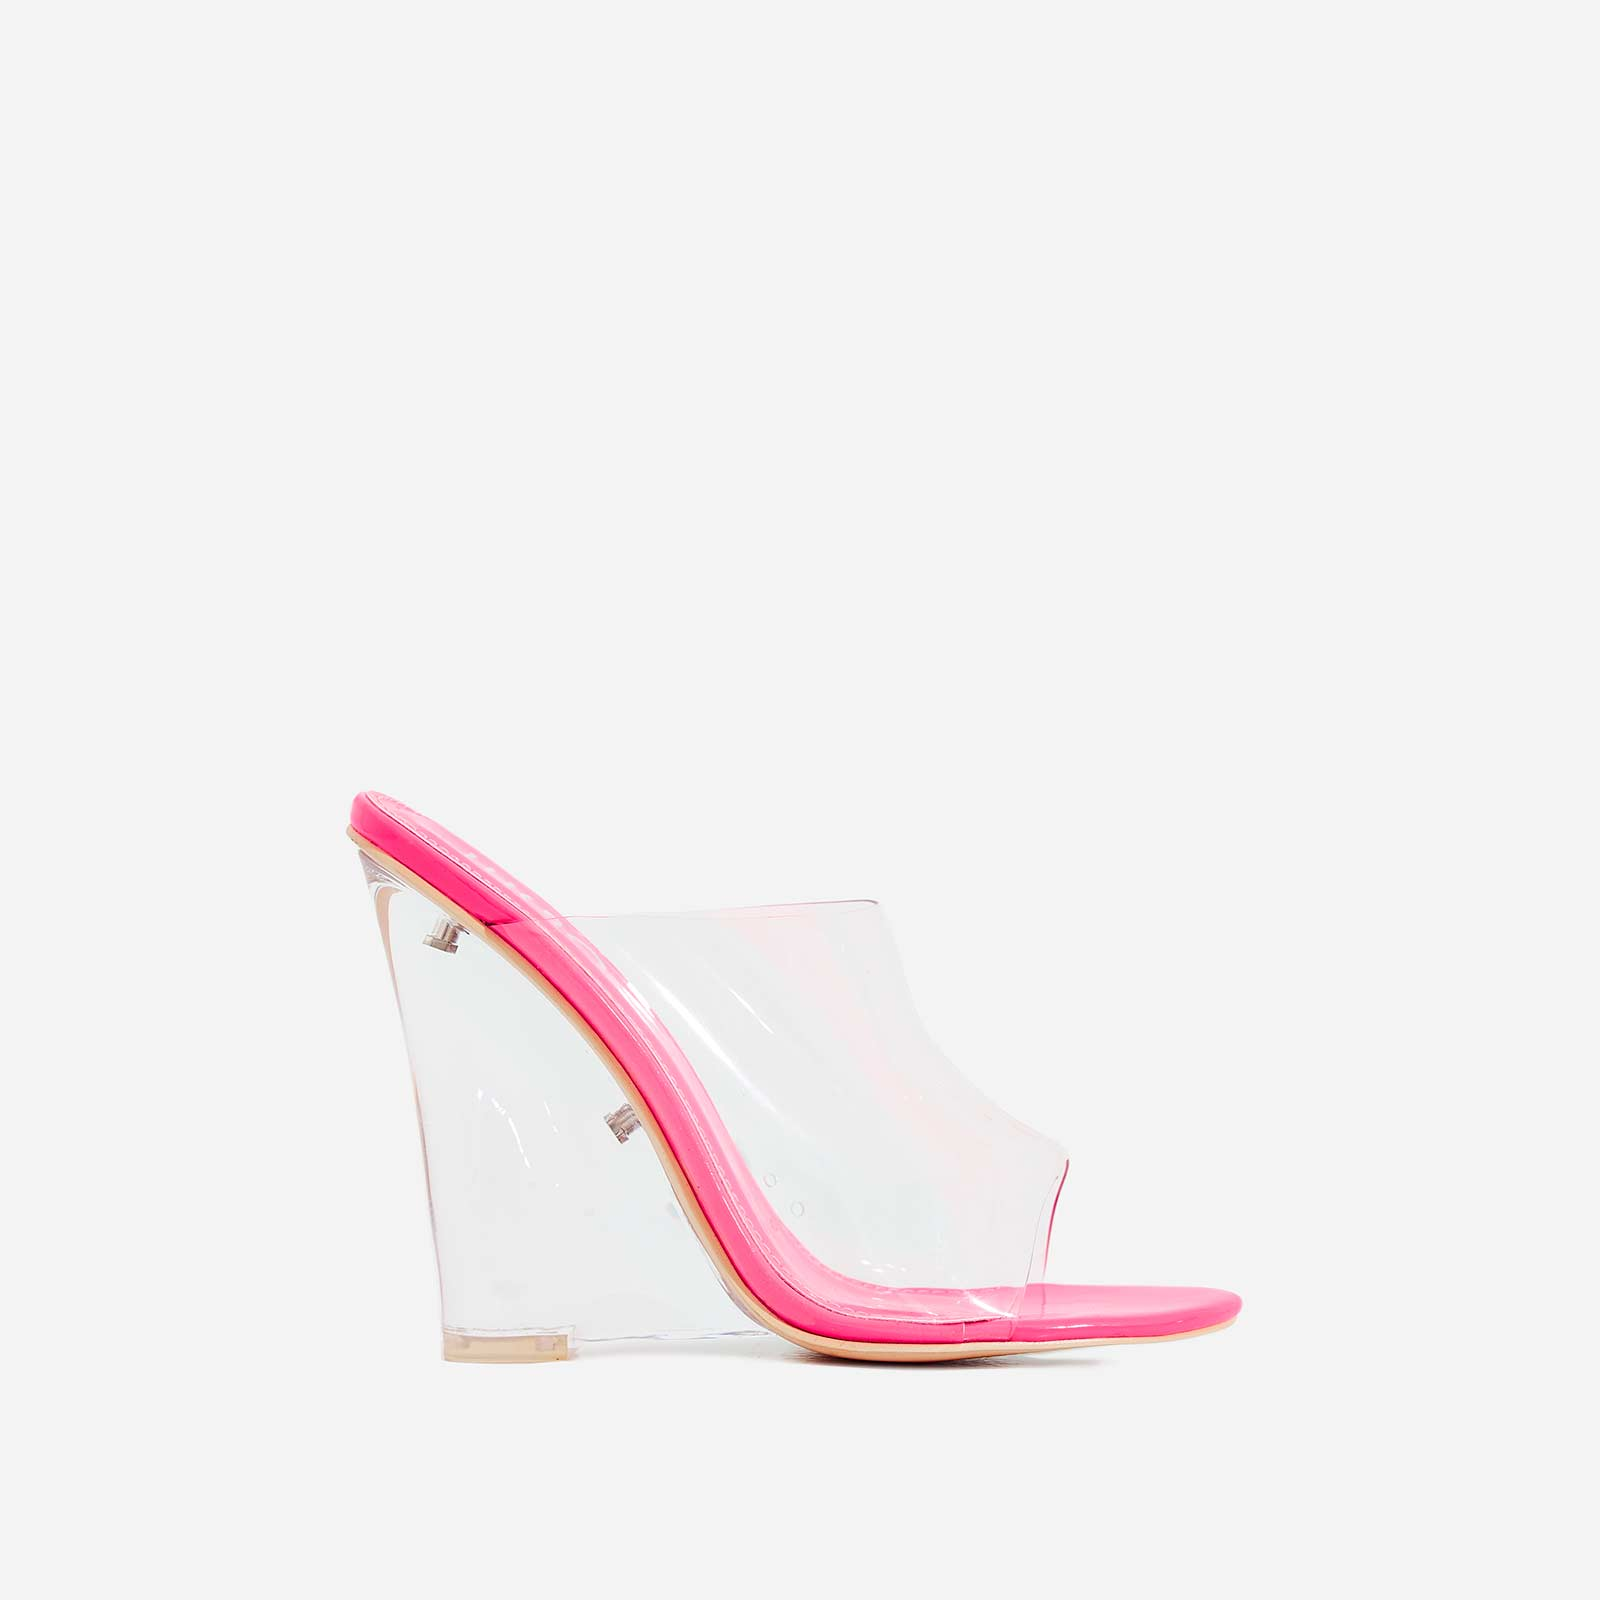 Lemonade Perspex Wedge Peep Toe Mule In Fuchsia Pink Patent